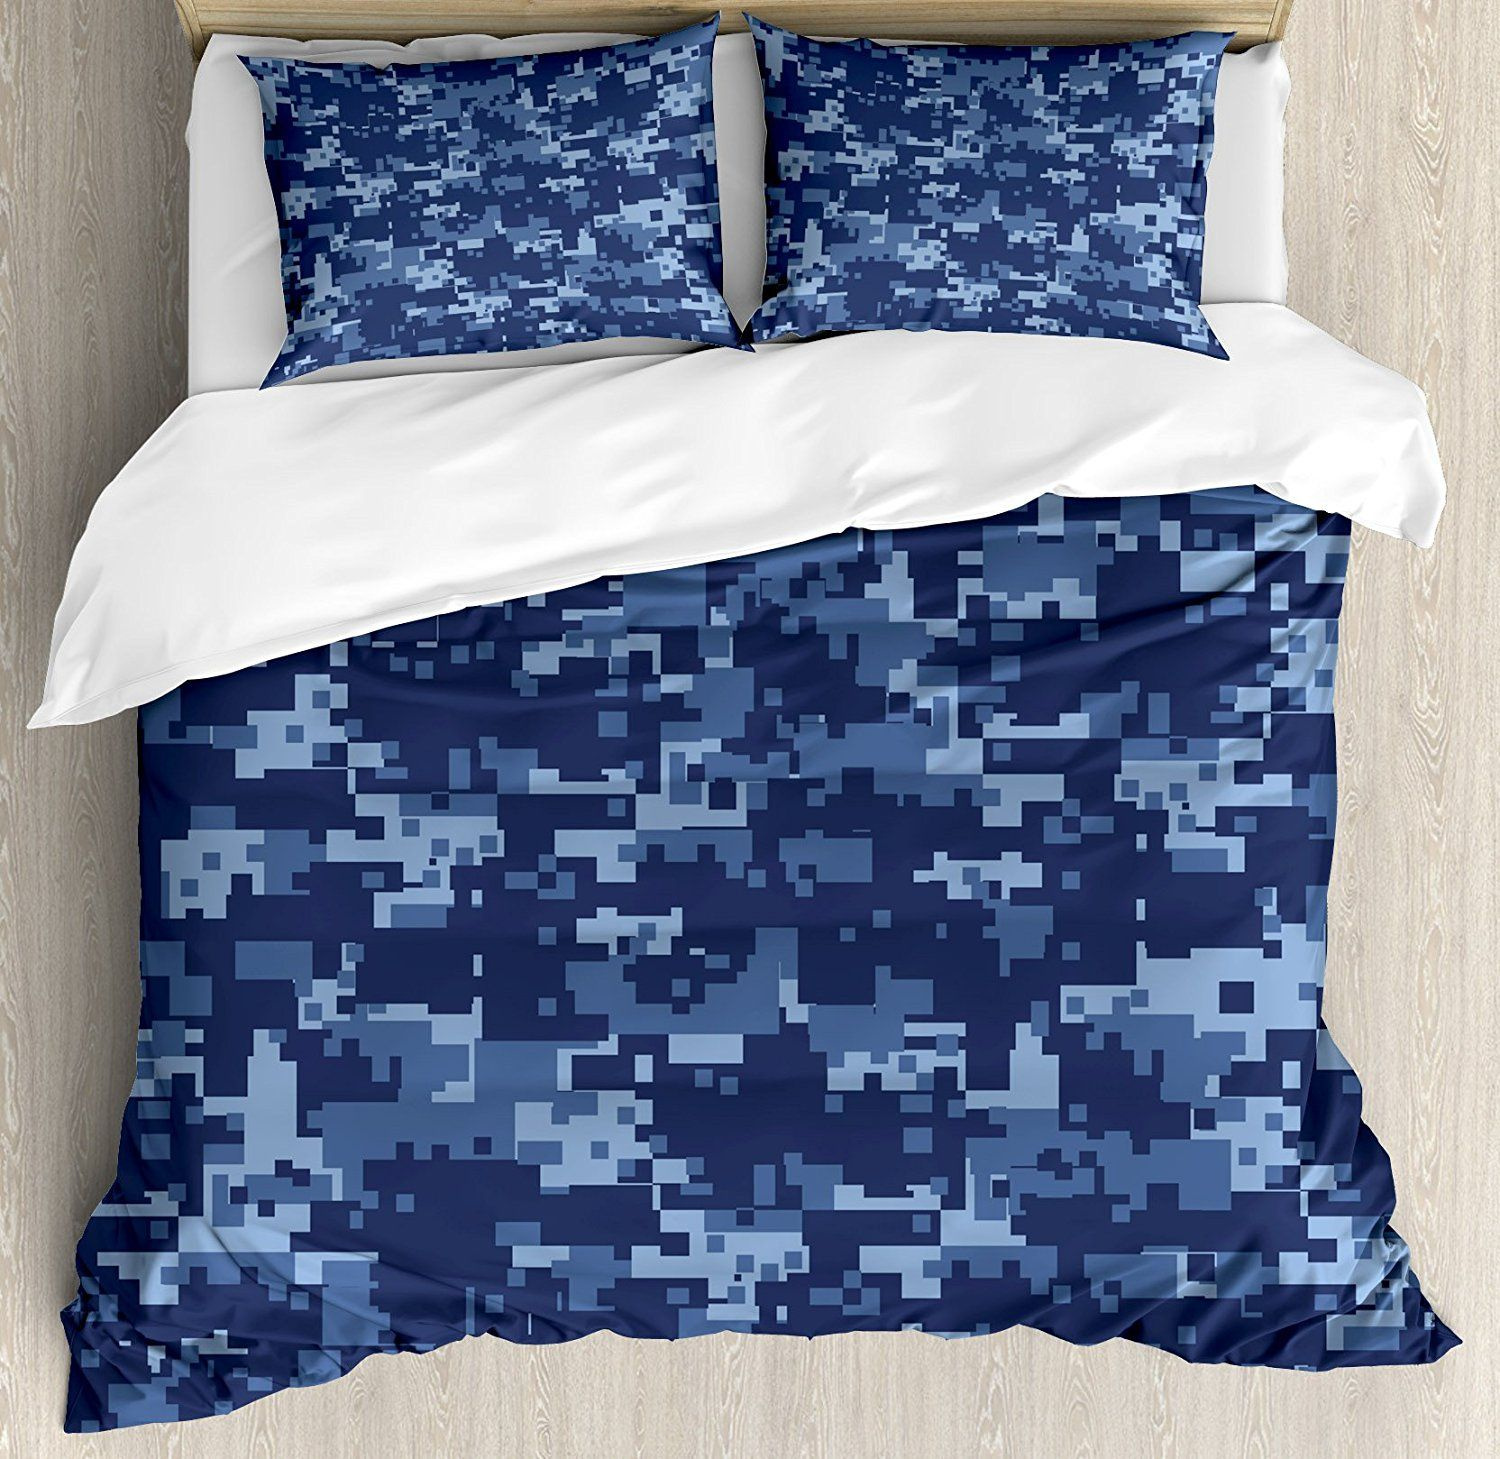 Military Camouflage Bedding Sets Lux Comfy Bedding Duvet Cover Sets Camouflage Bedding Blue Duvet Cover